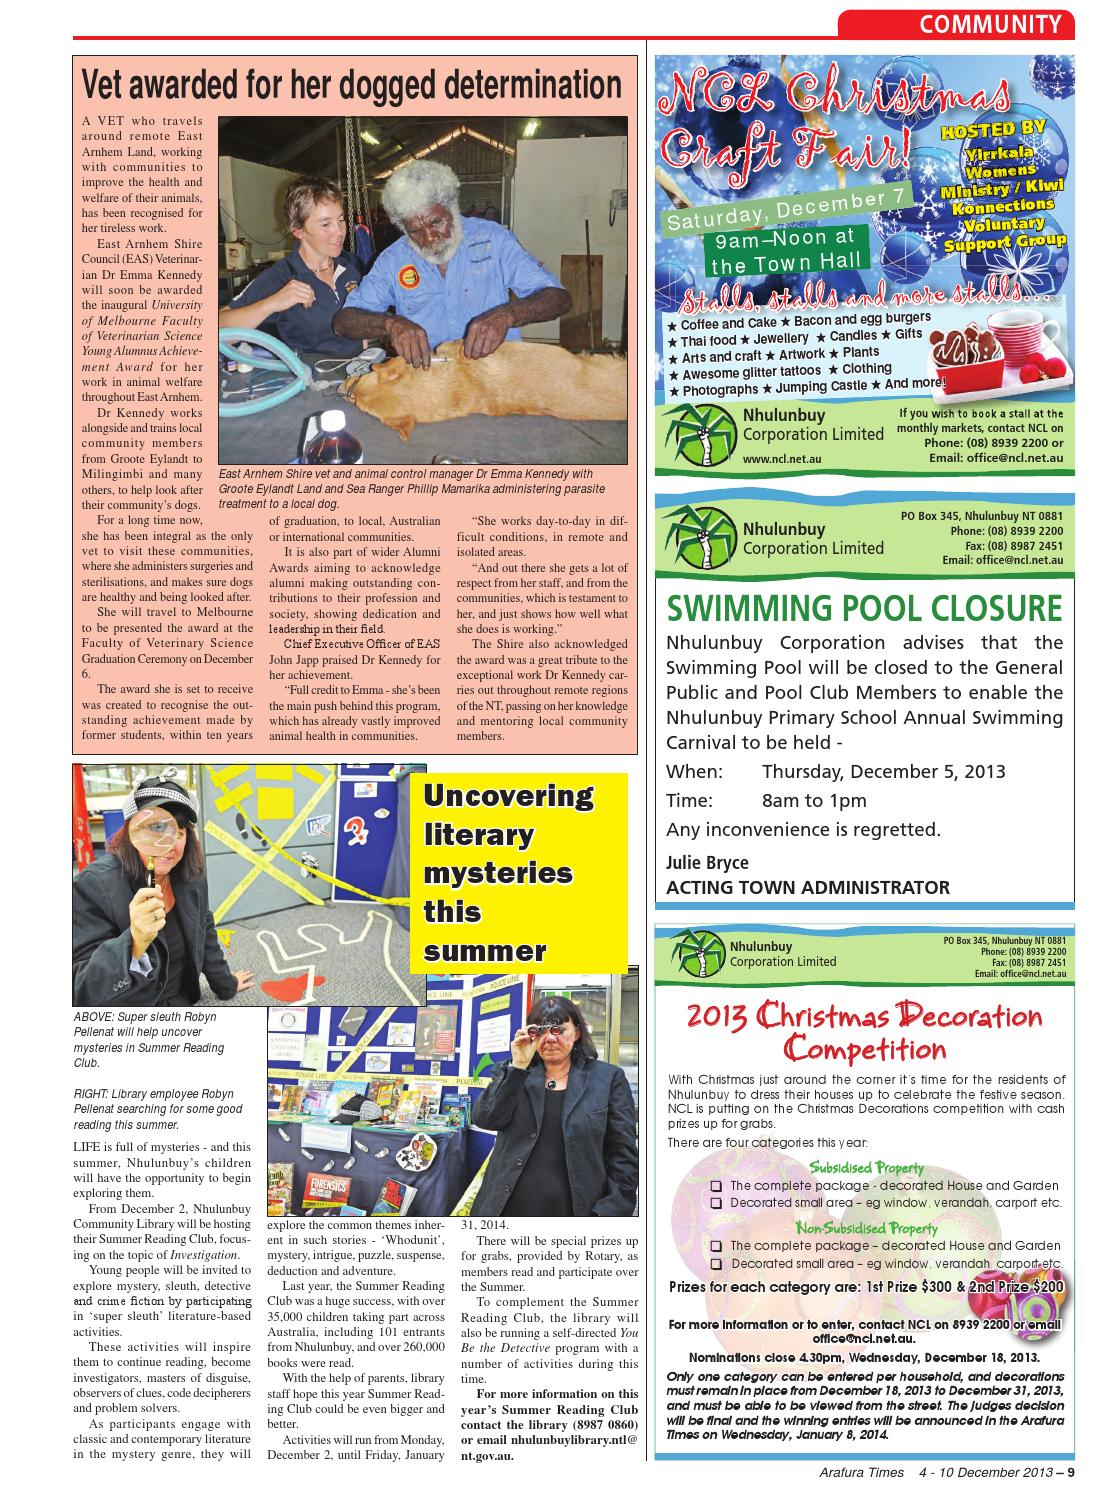 Arafura times 2013 12 04 by Regional and Remote Newspapers